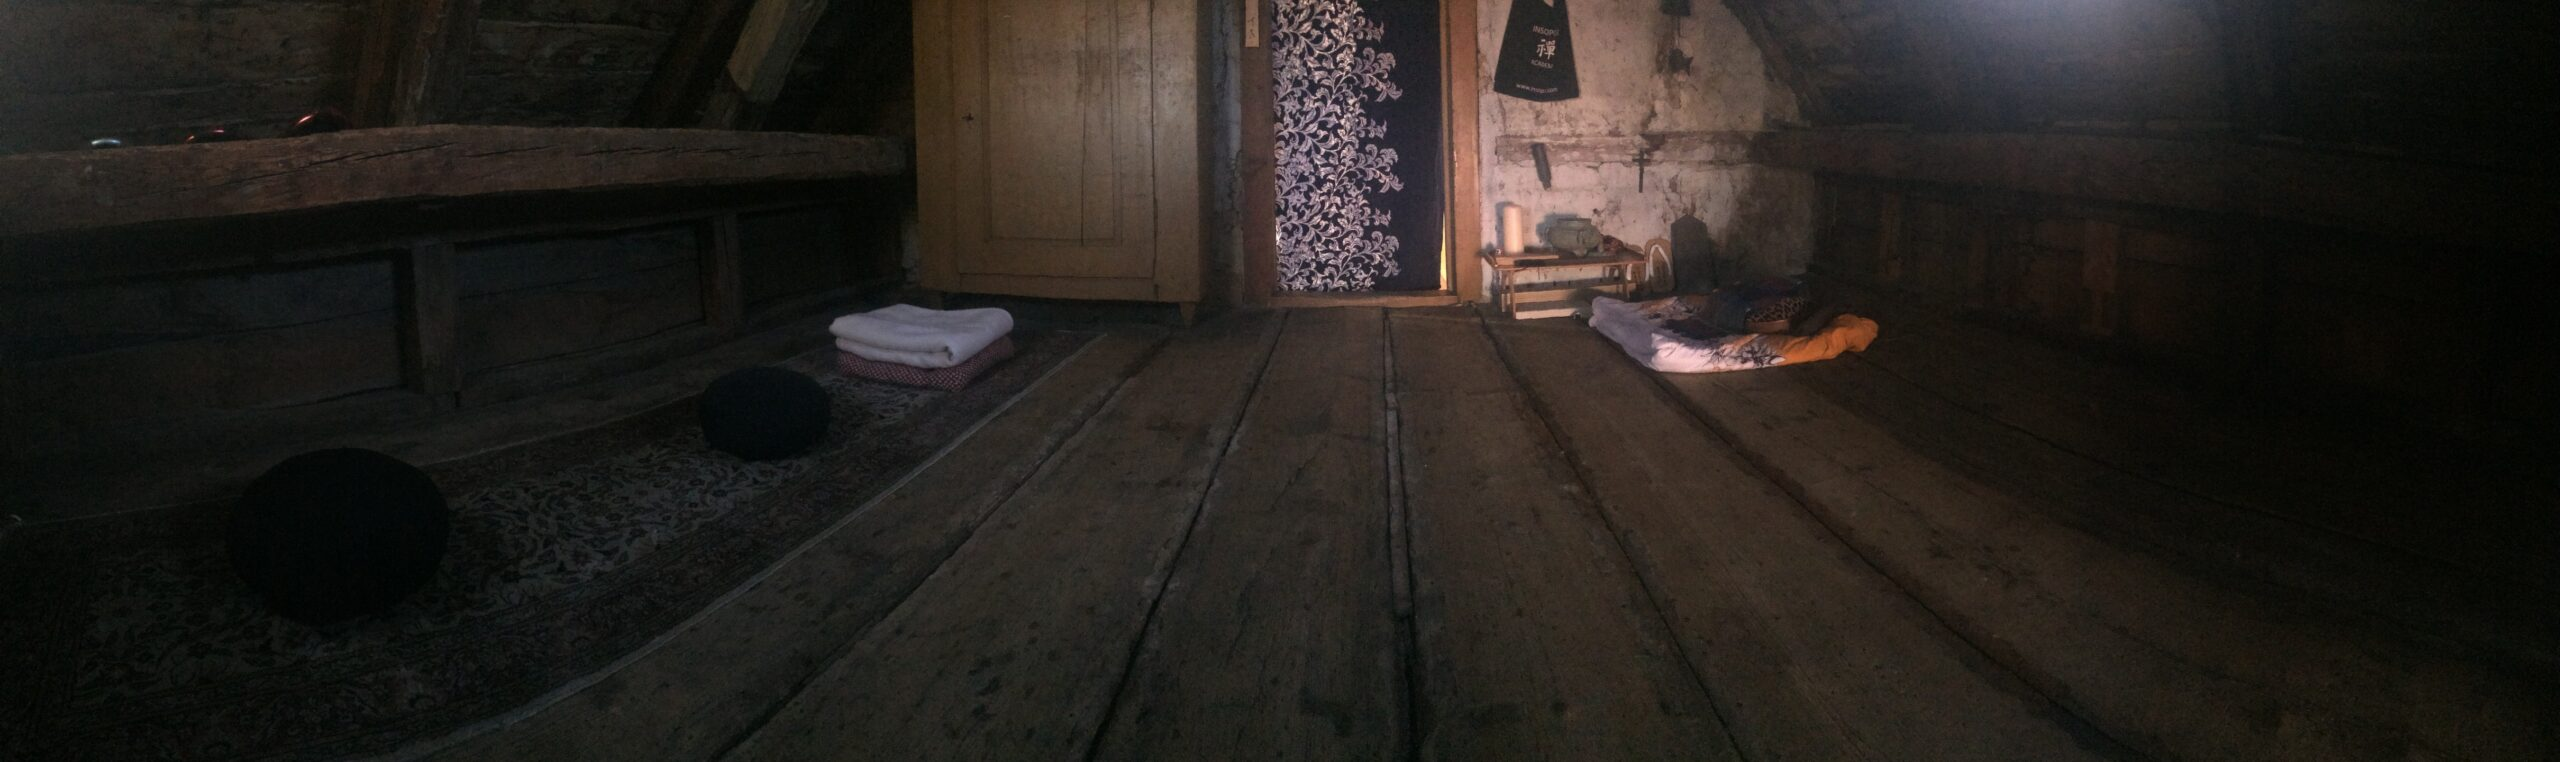 First 7-day Insopor Zen Academy retreat in January in an unheated attic